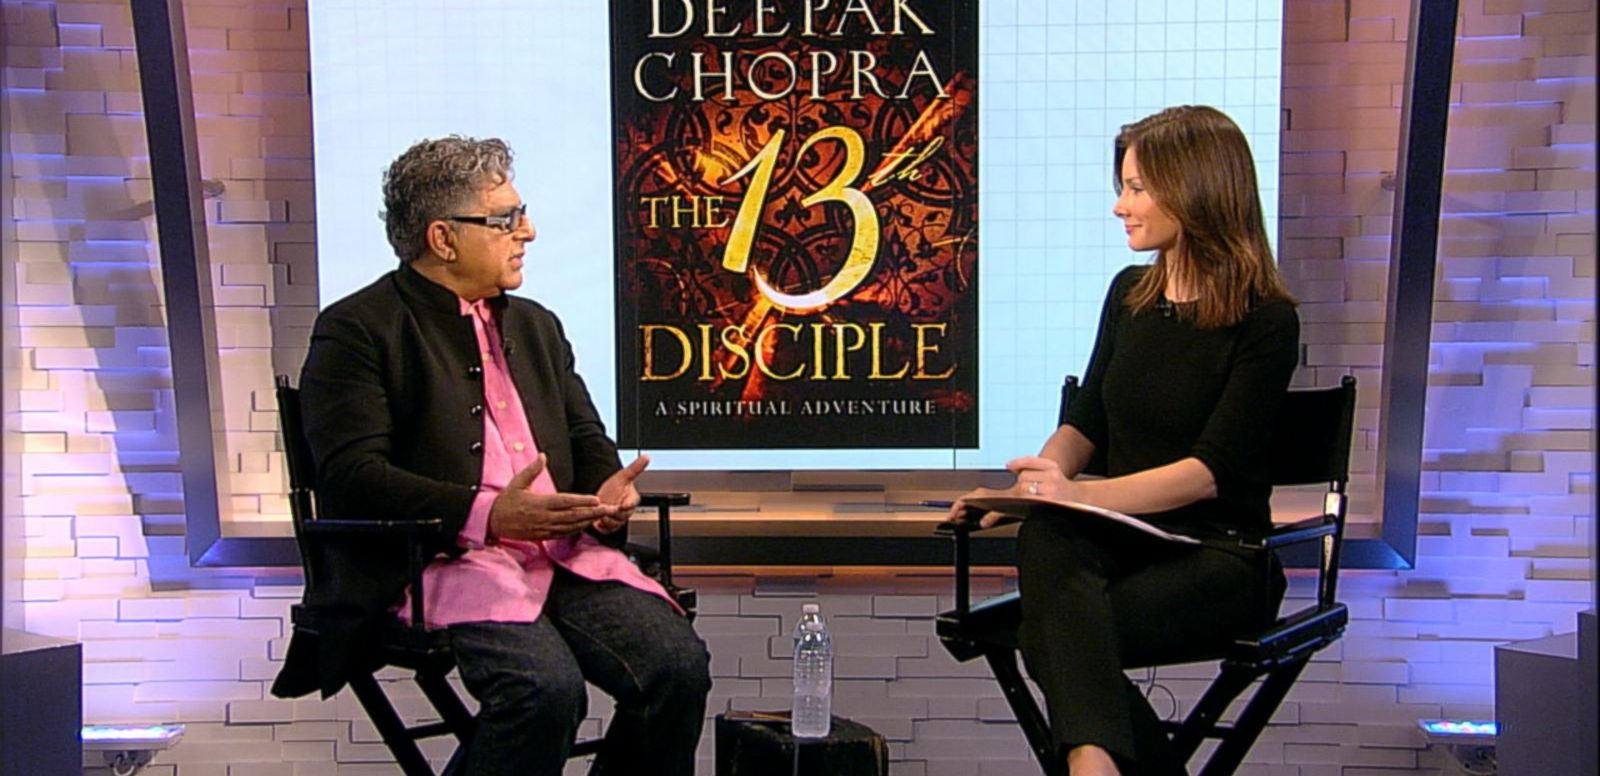 VIDEO: Deepak Chopra's Morning Mantra: 4 Things to Do Before You Start Your Day